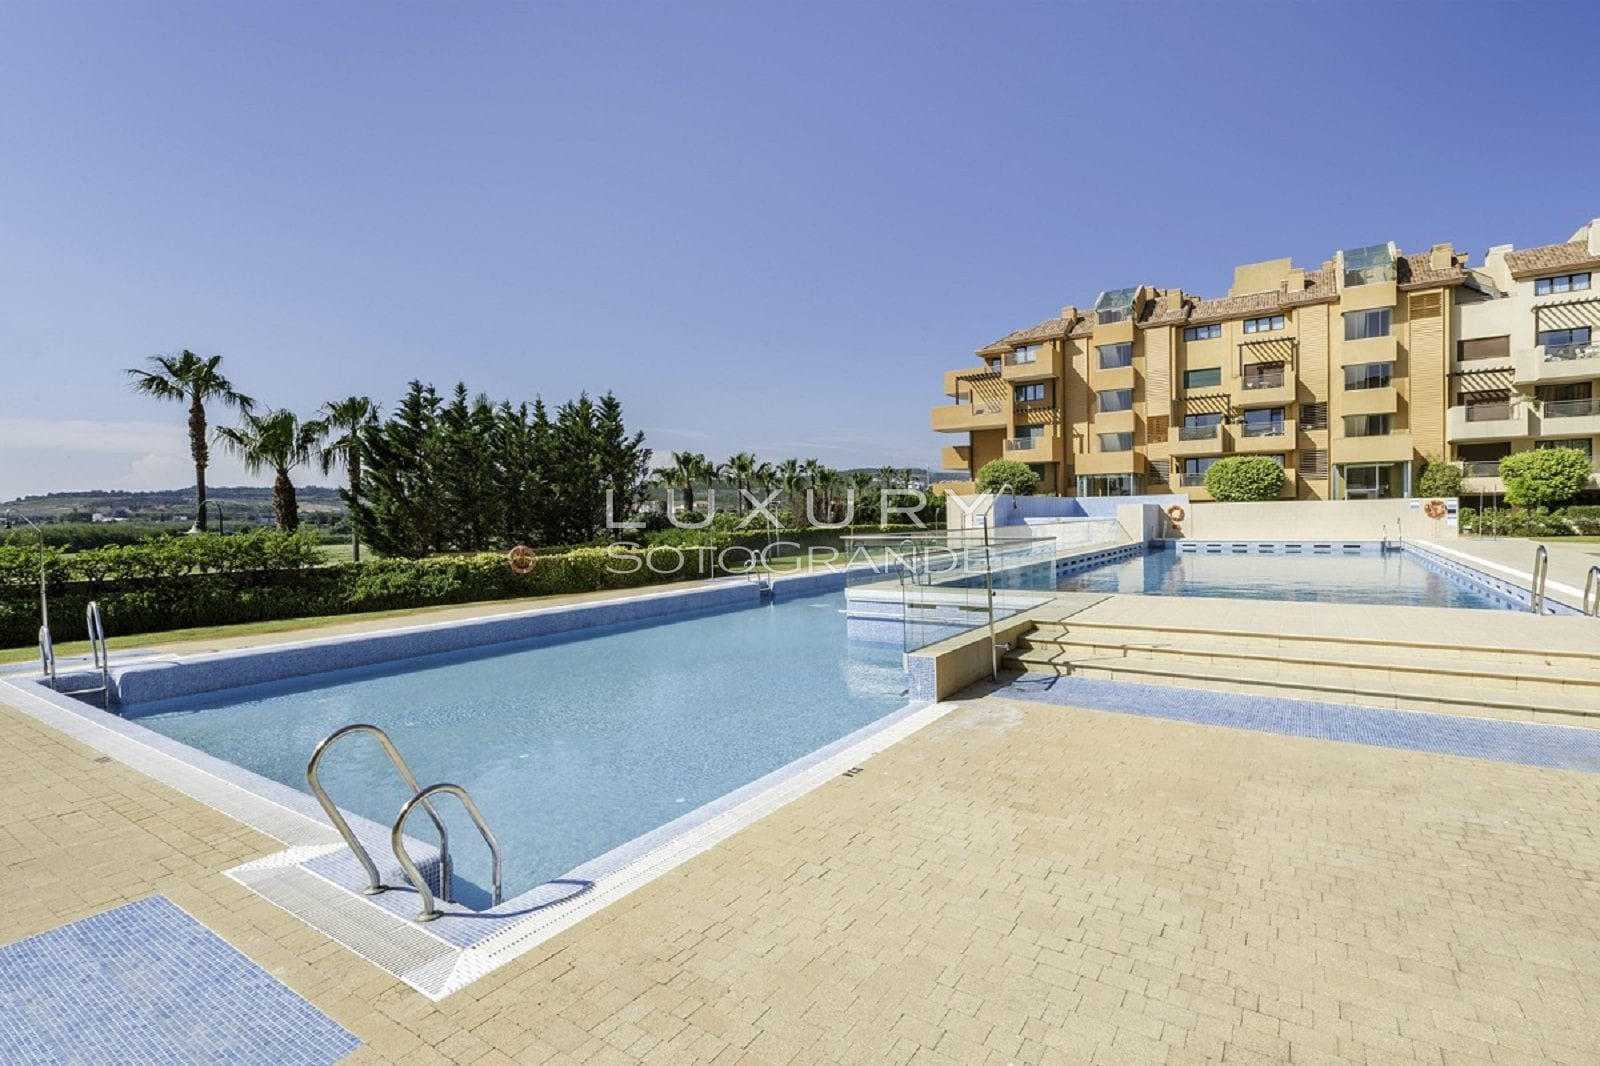 Stunning ground floor apartment for sale in Ribera de Marlin, Sotogrande